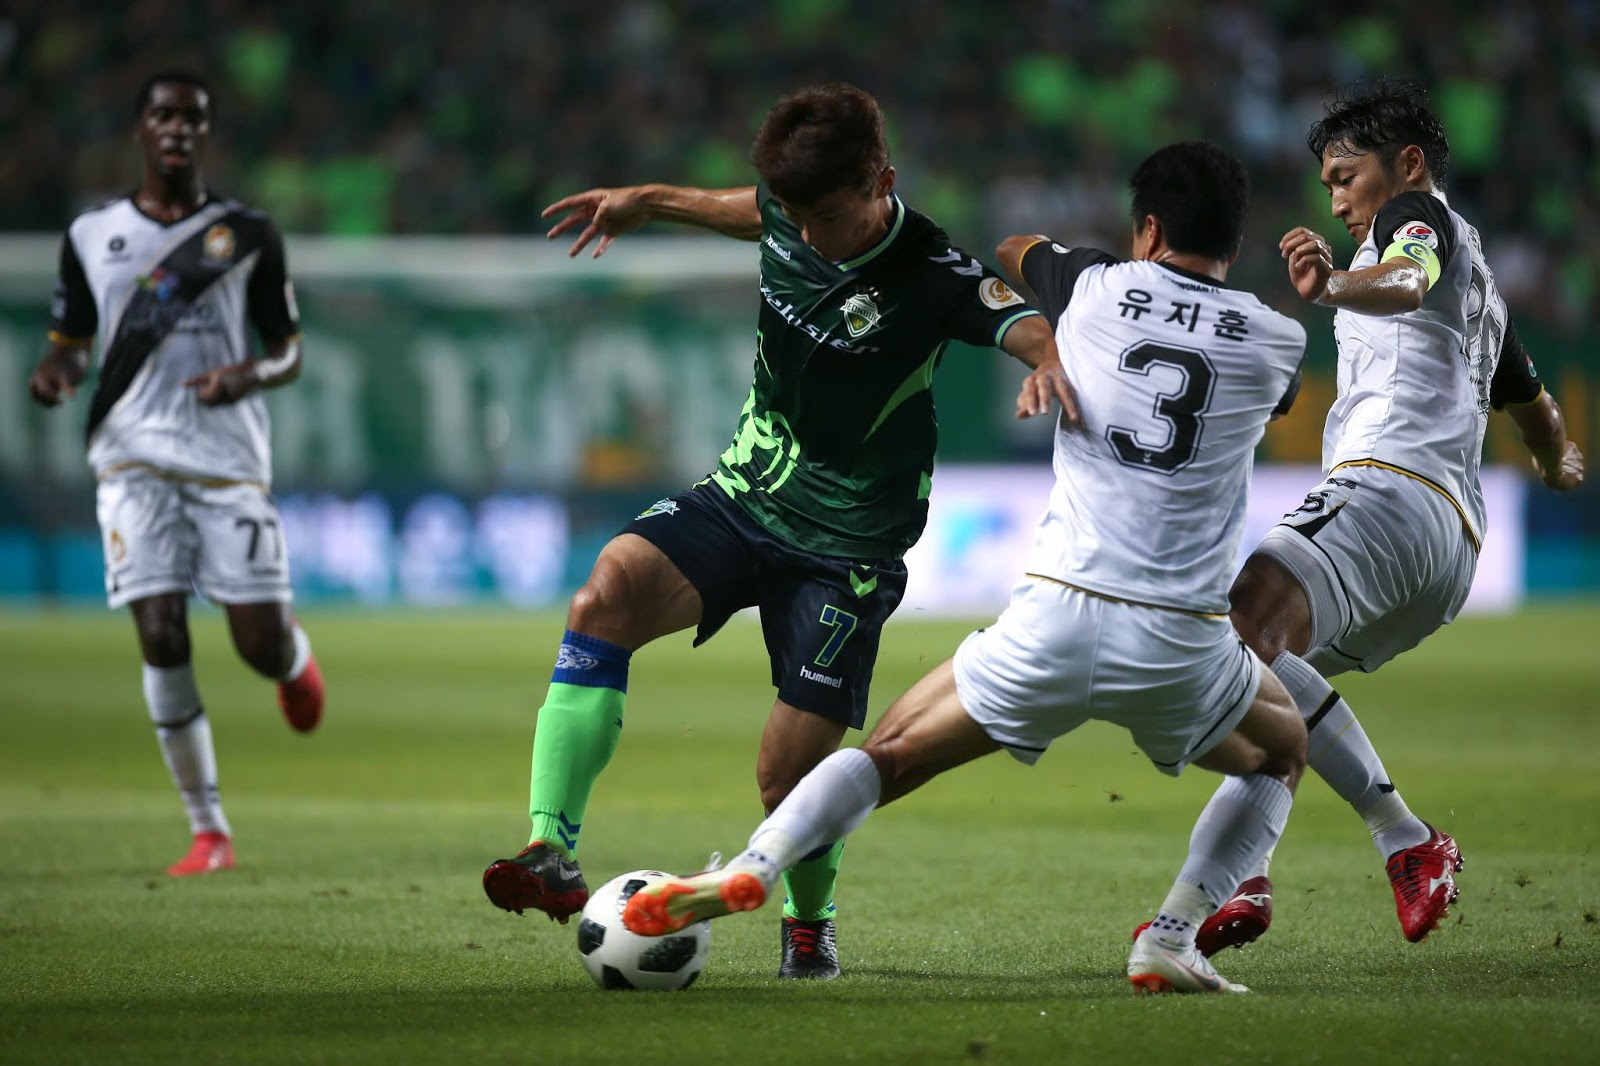 Preview: Gyeongnam FC vs Jeonbuk Hyundai Motors